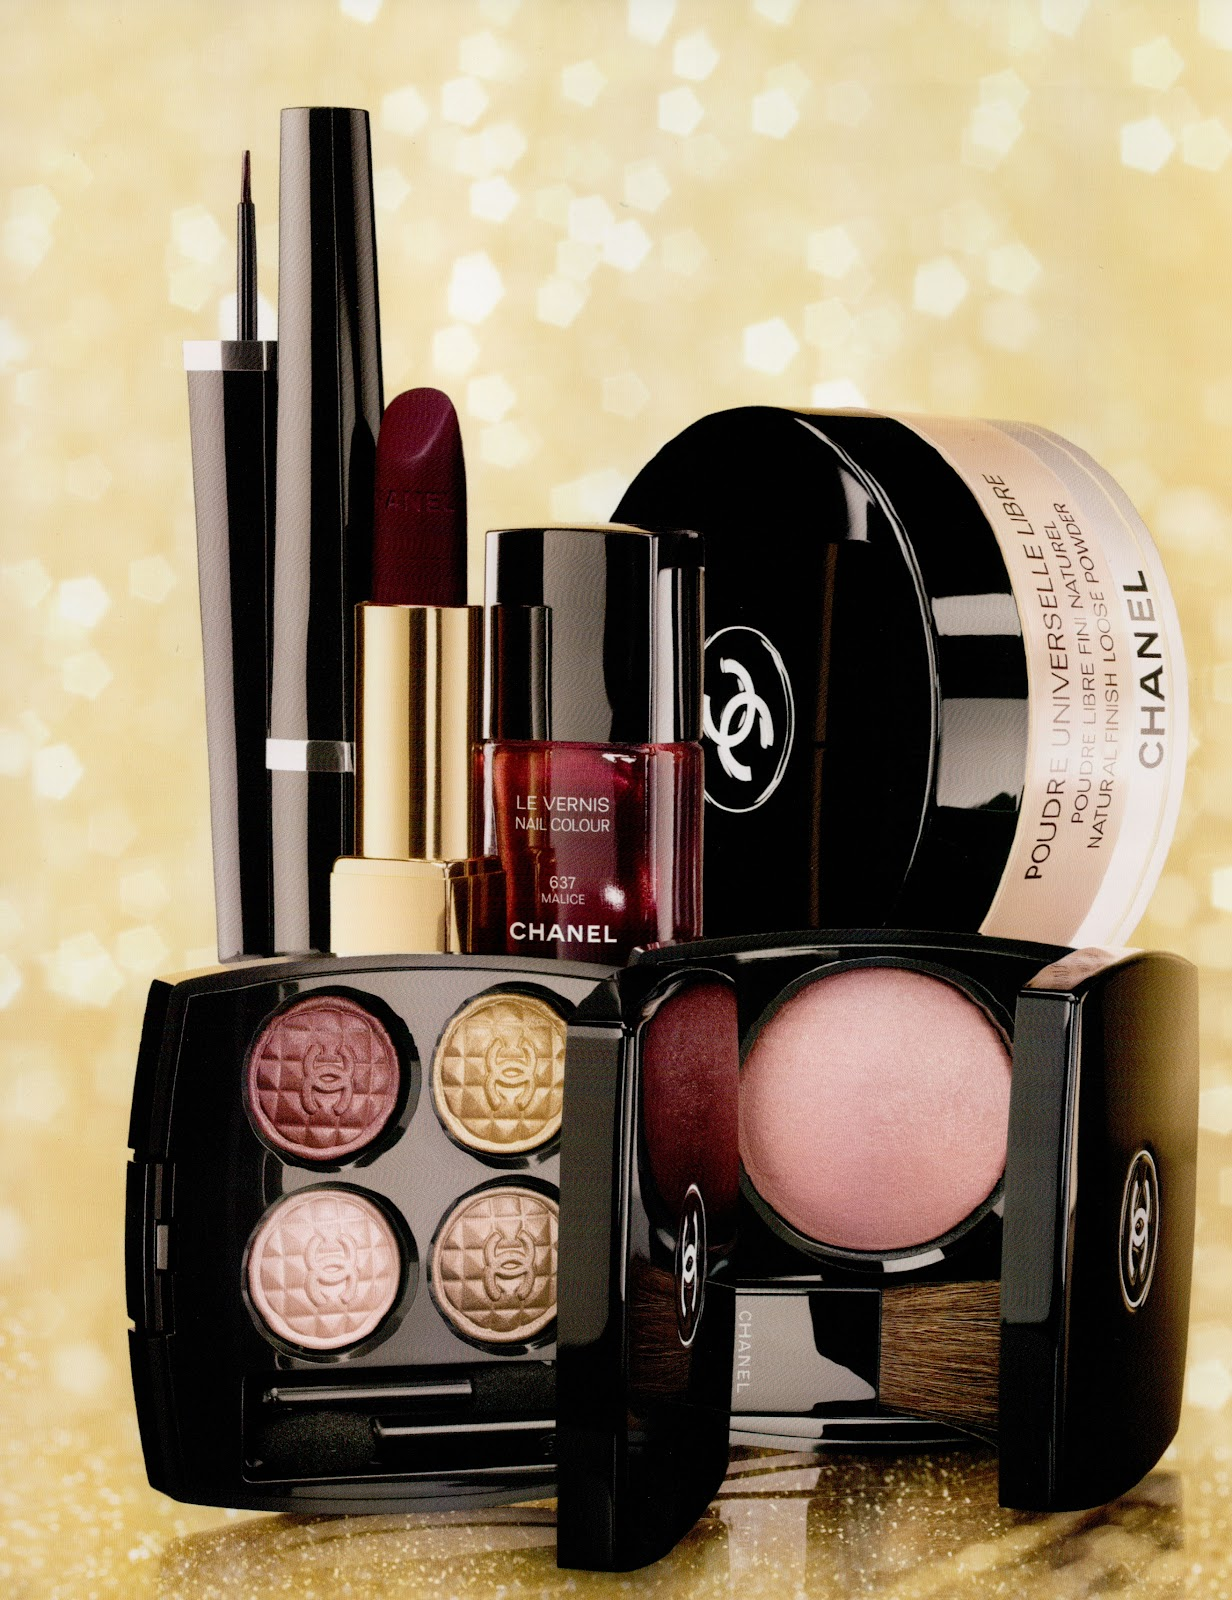 Face by stace with stacey camacho: collection eclat du soir de chanel : evening glow collection from chanel 2012.